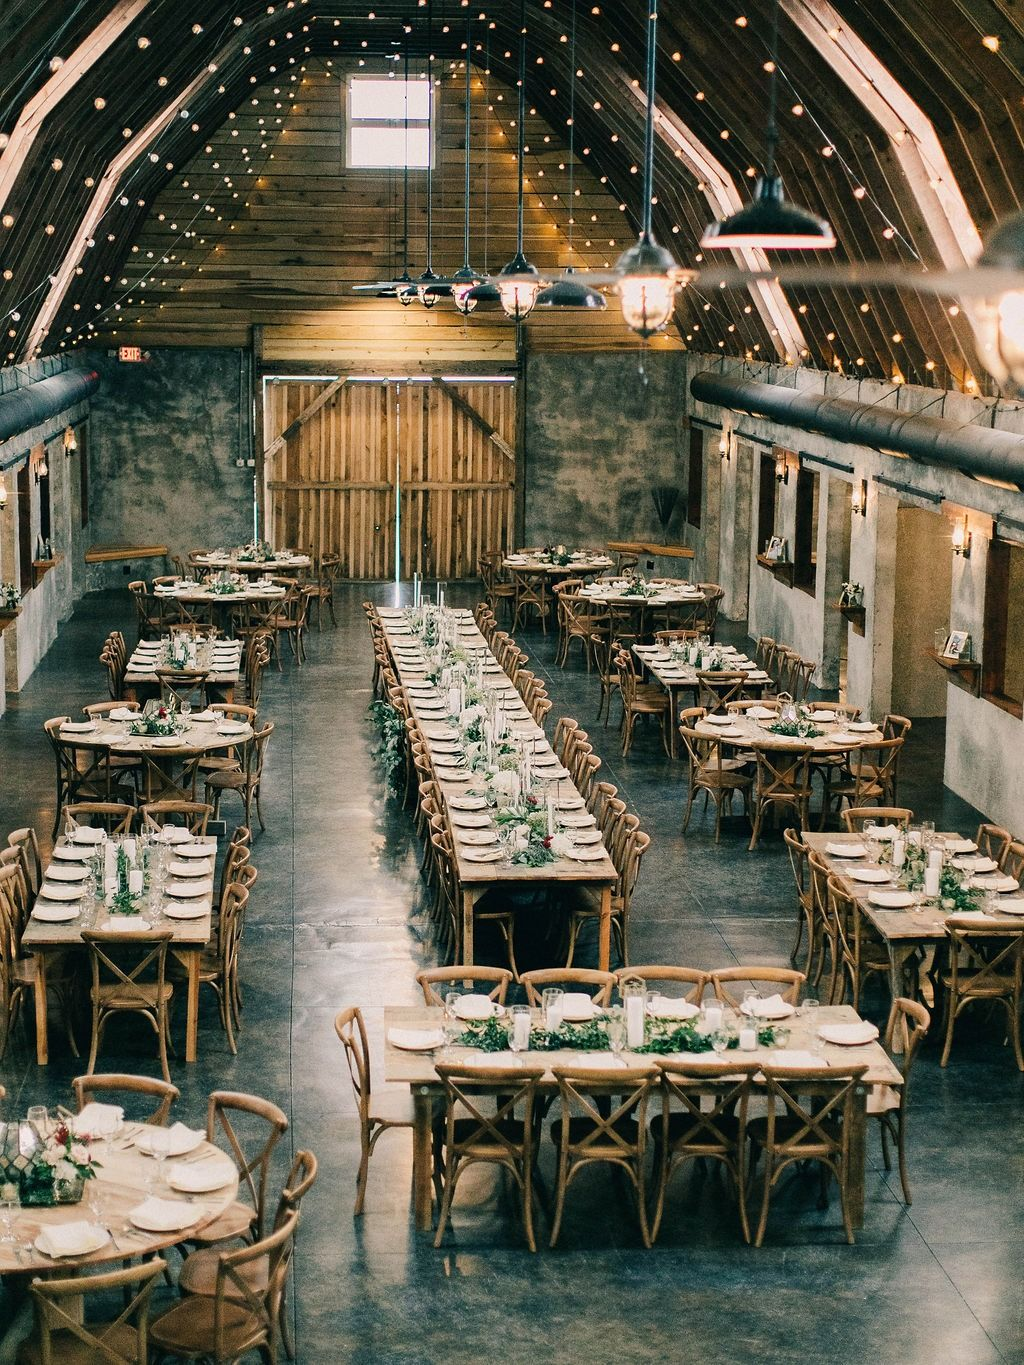 Overlook Barn Reception Layout For 175 People At Farm Tables And